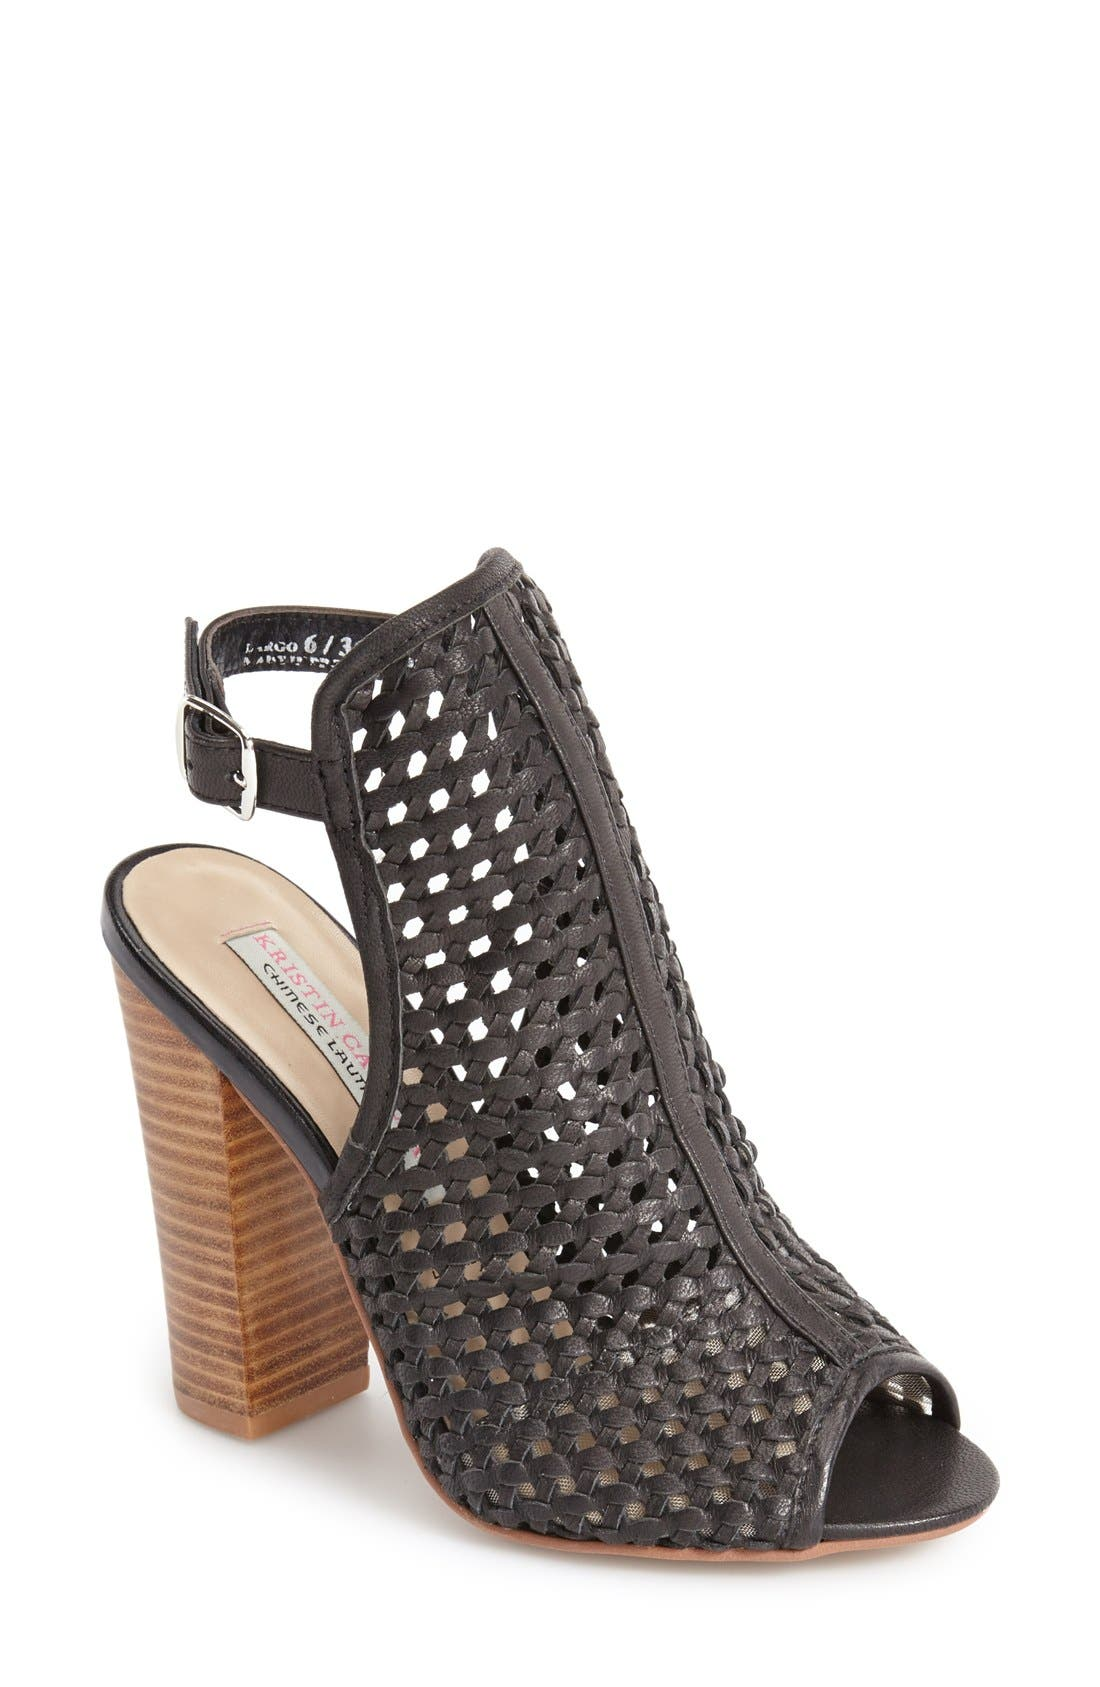 'Largo' Woven Leather Open Back Sandal,                             Main thumbnail 1, color,                             001